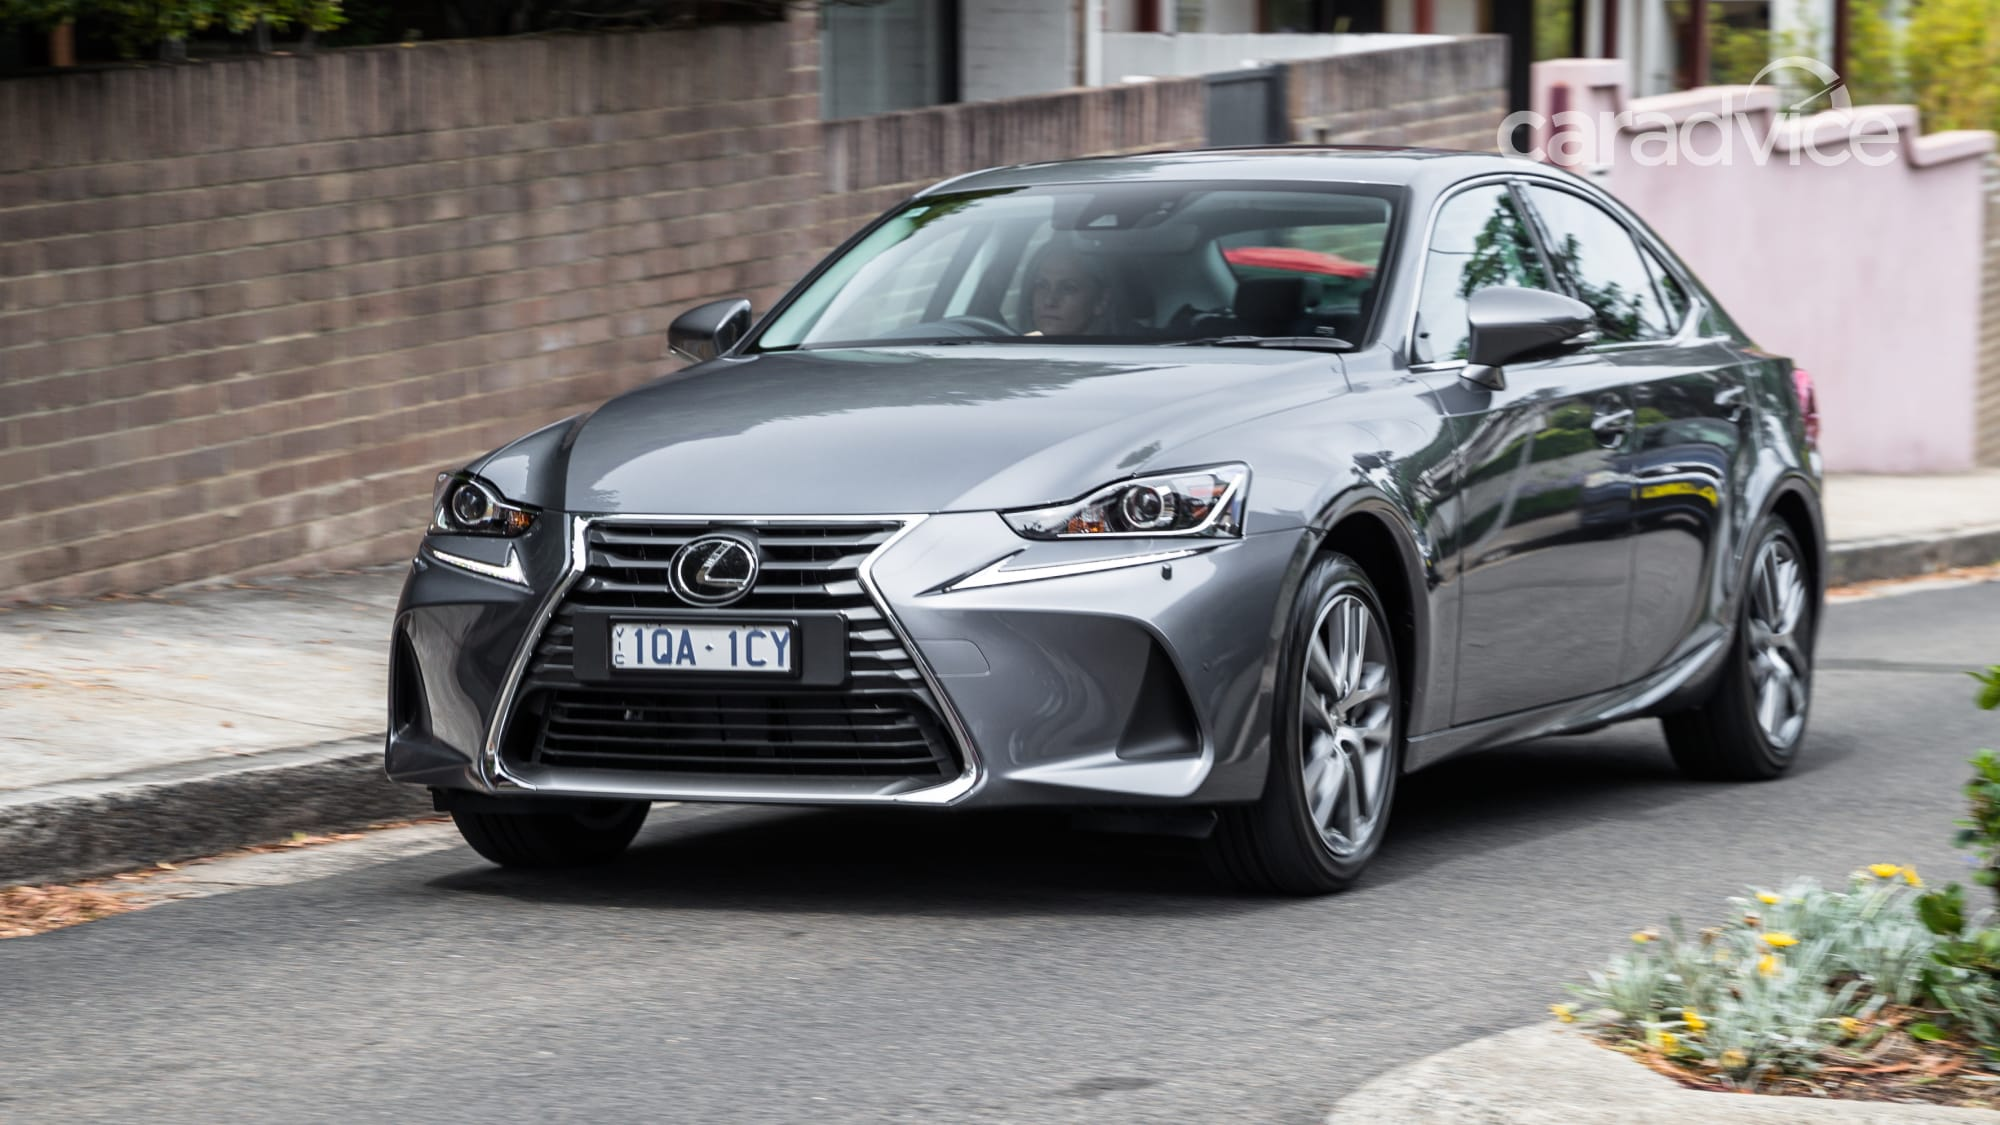 2021 lexus is revealed in leaked images | caradvice